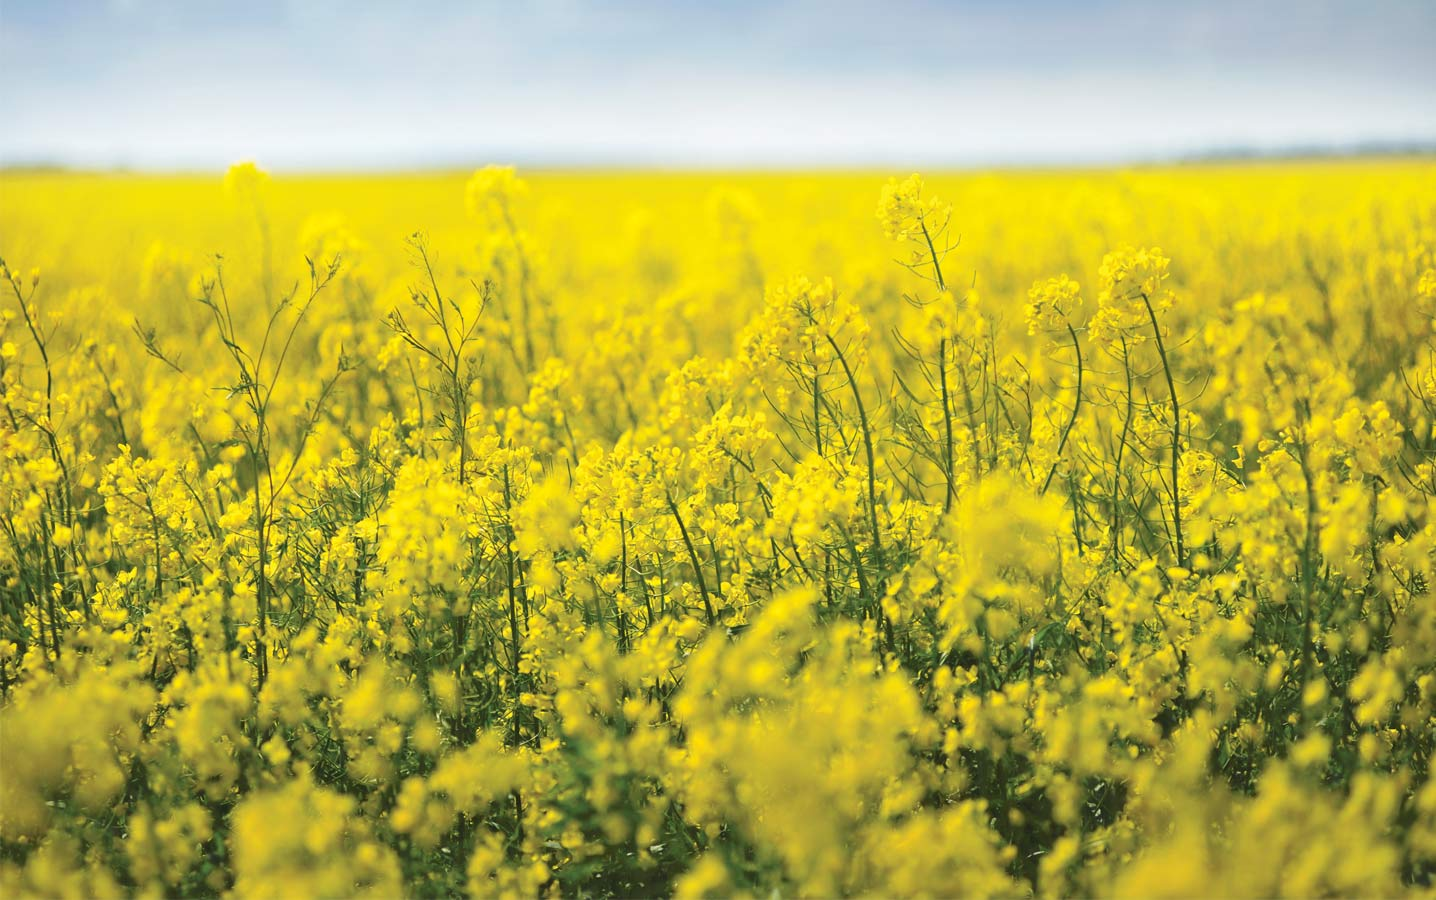 Close up on a bright yellow field of Canola